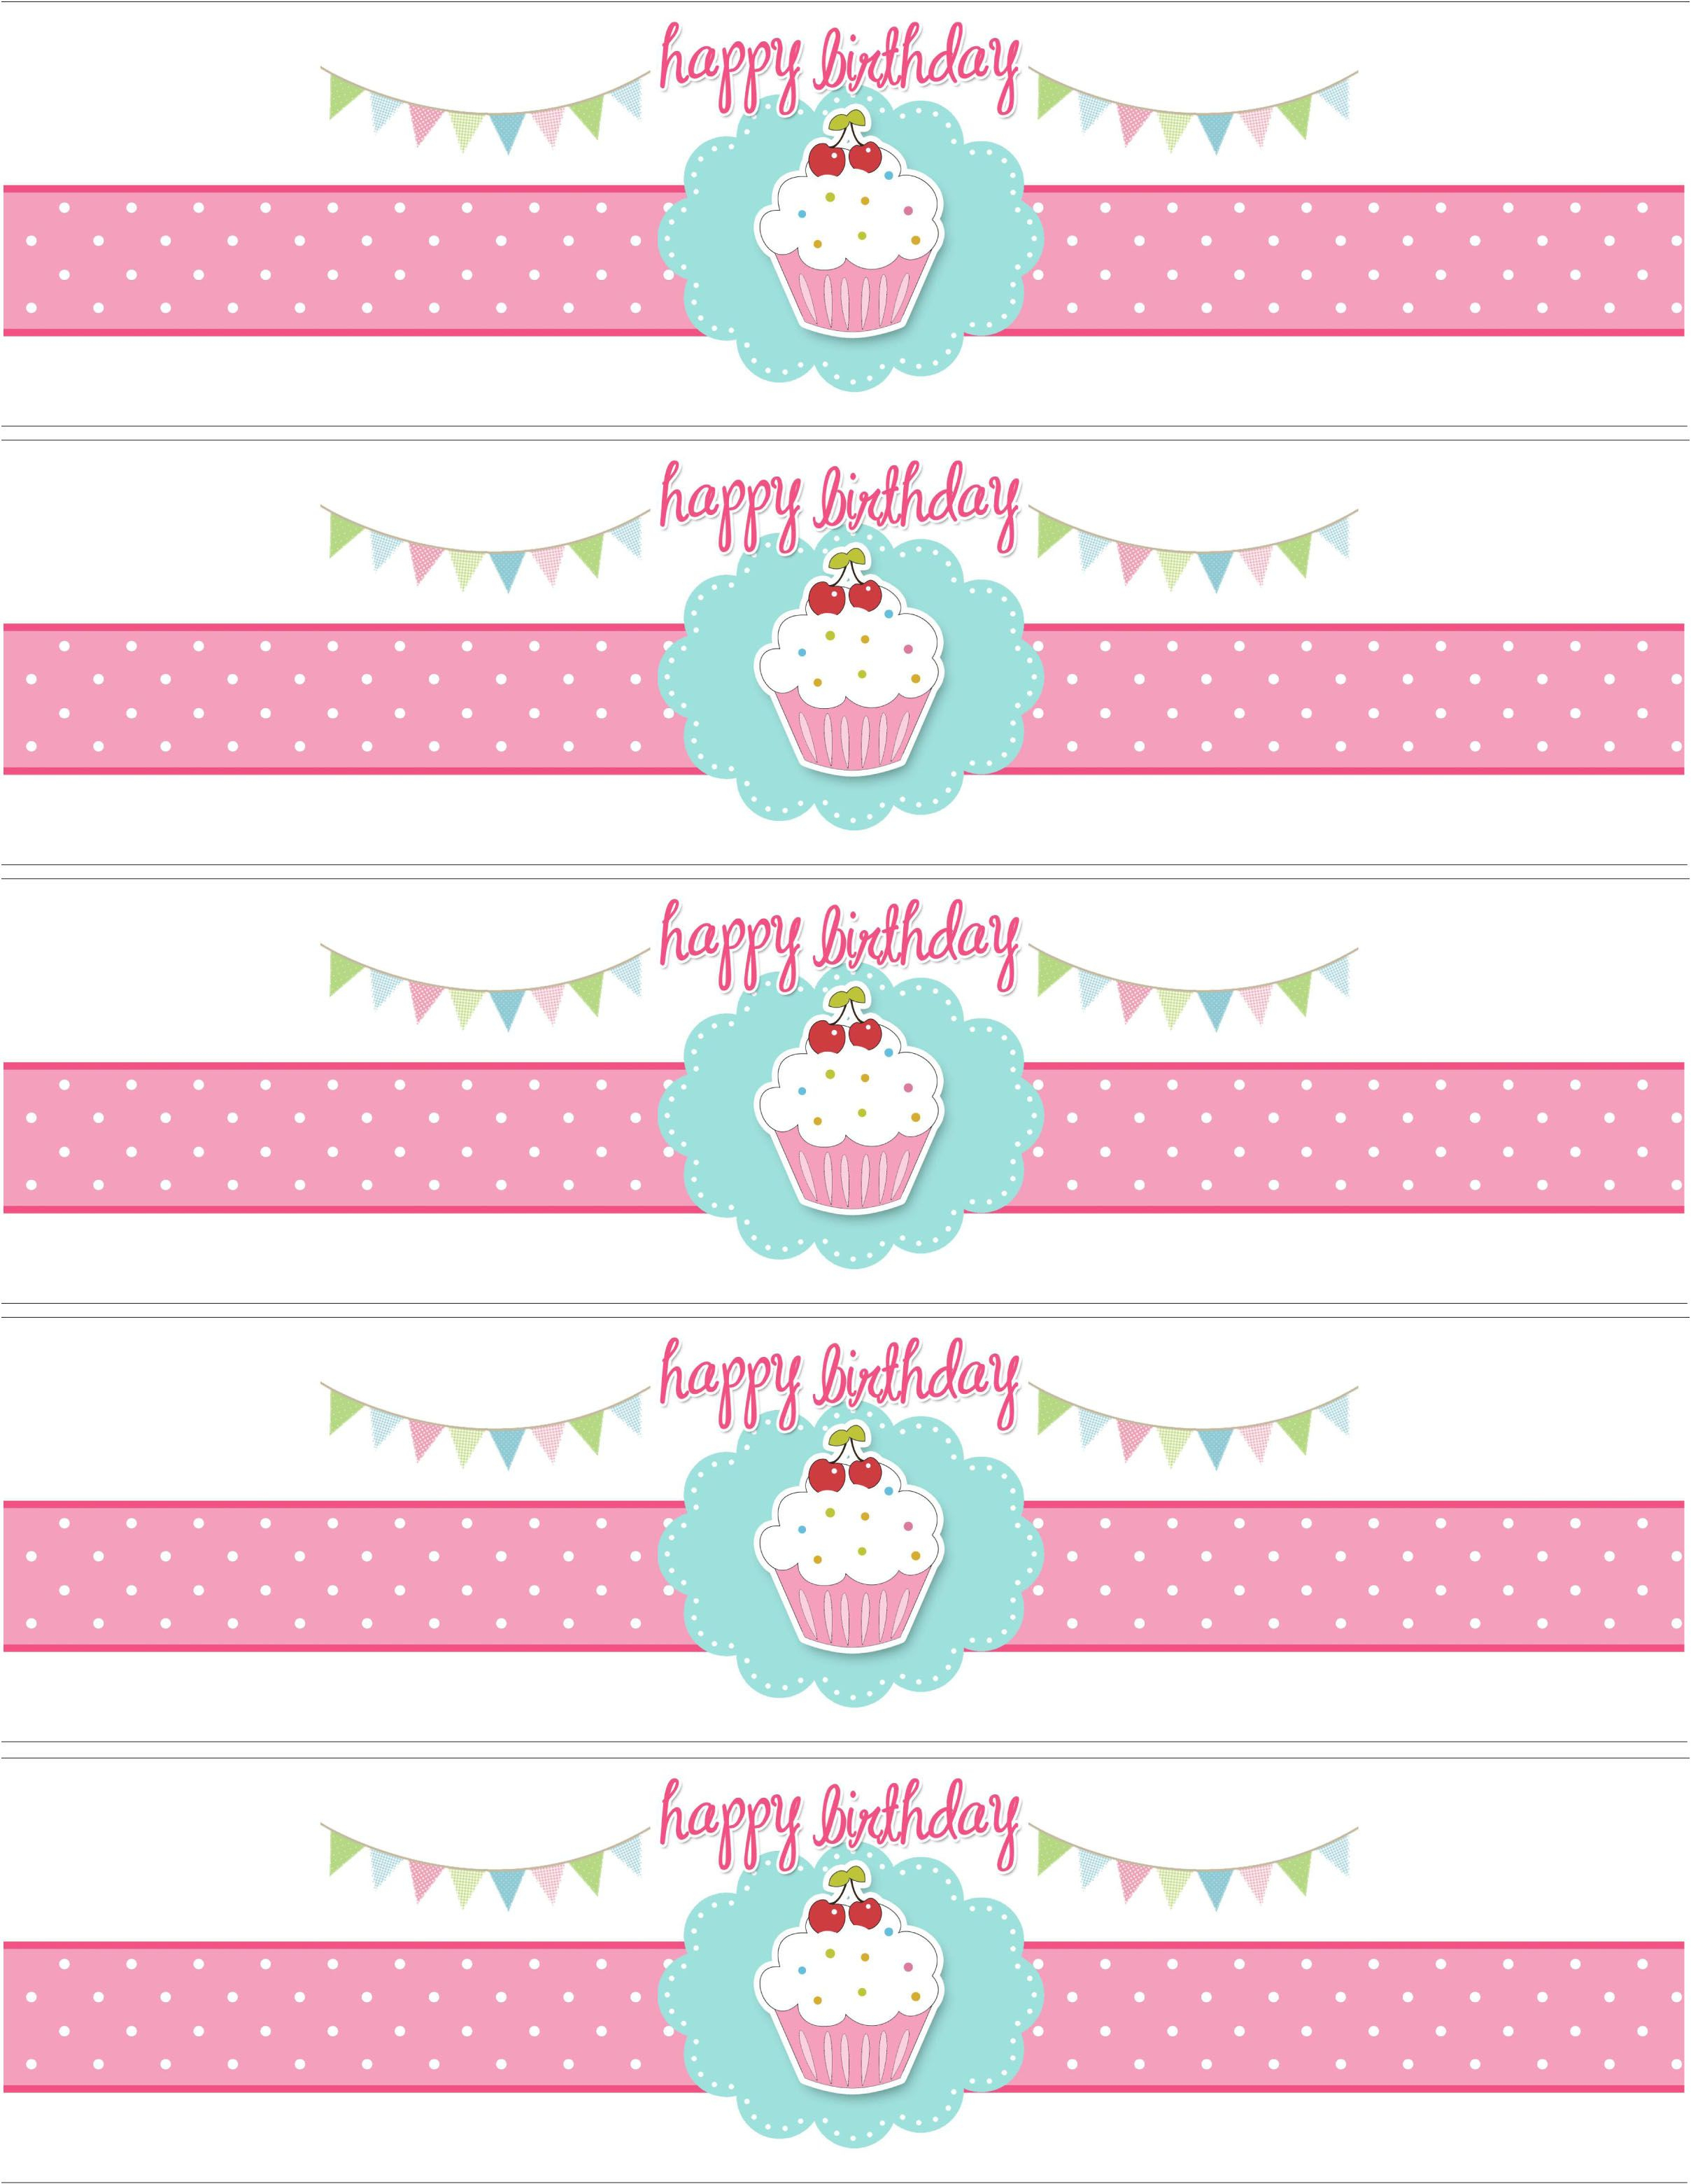 Cupcake Birthday Party With Free Printables   Diy Birthday Party - Free Printable Water Bottle Labels For Birthday